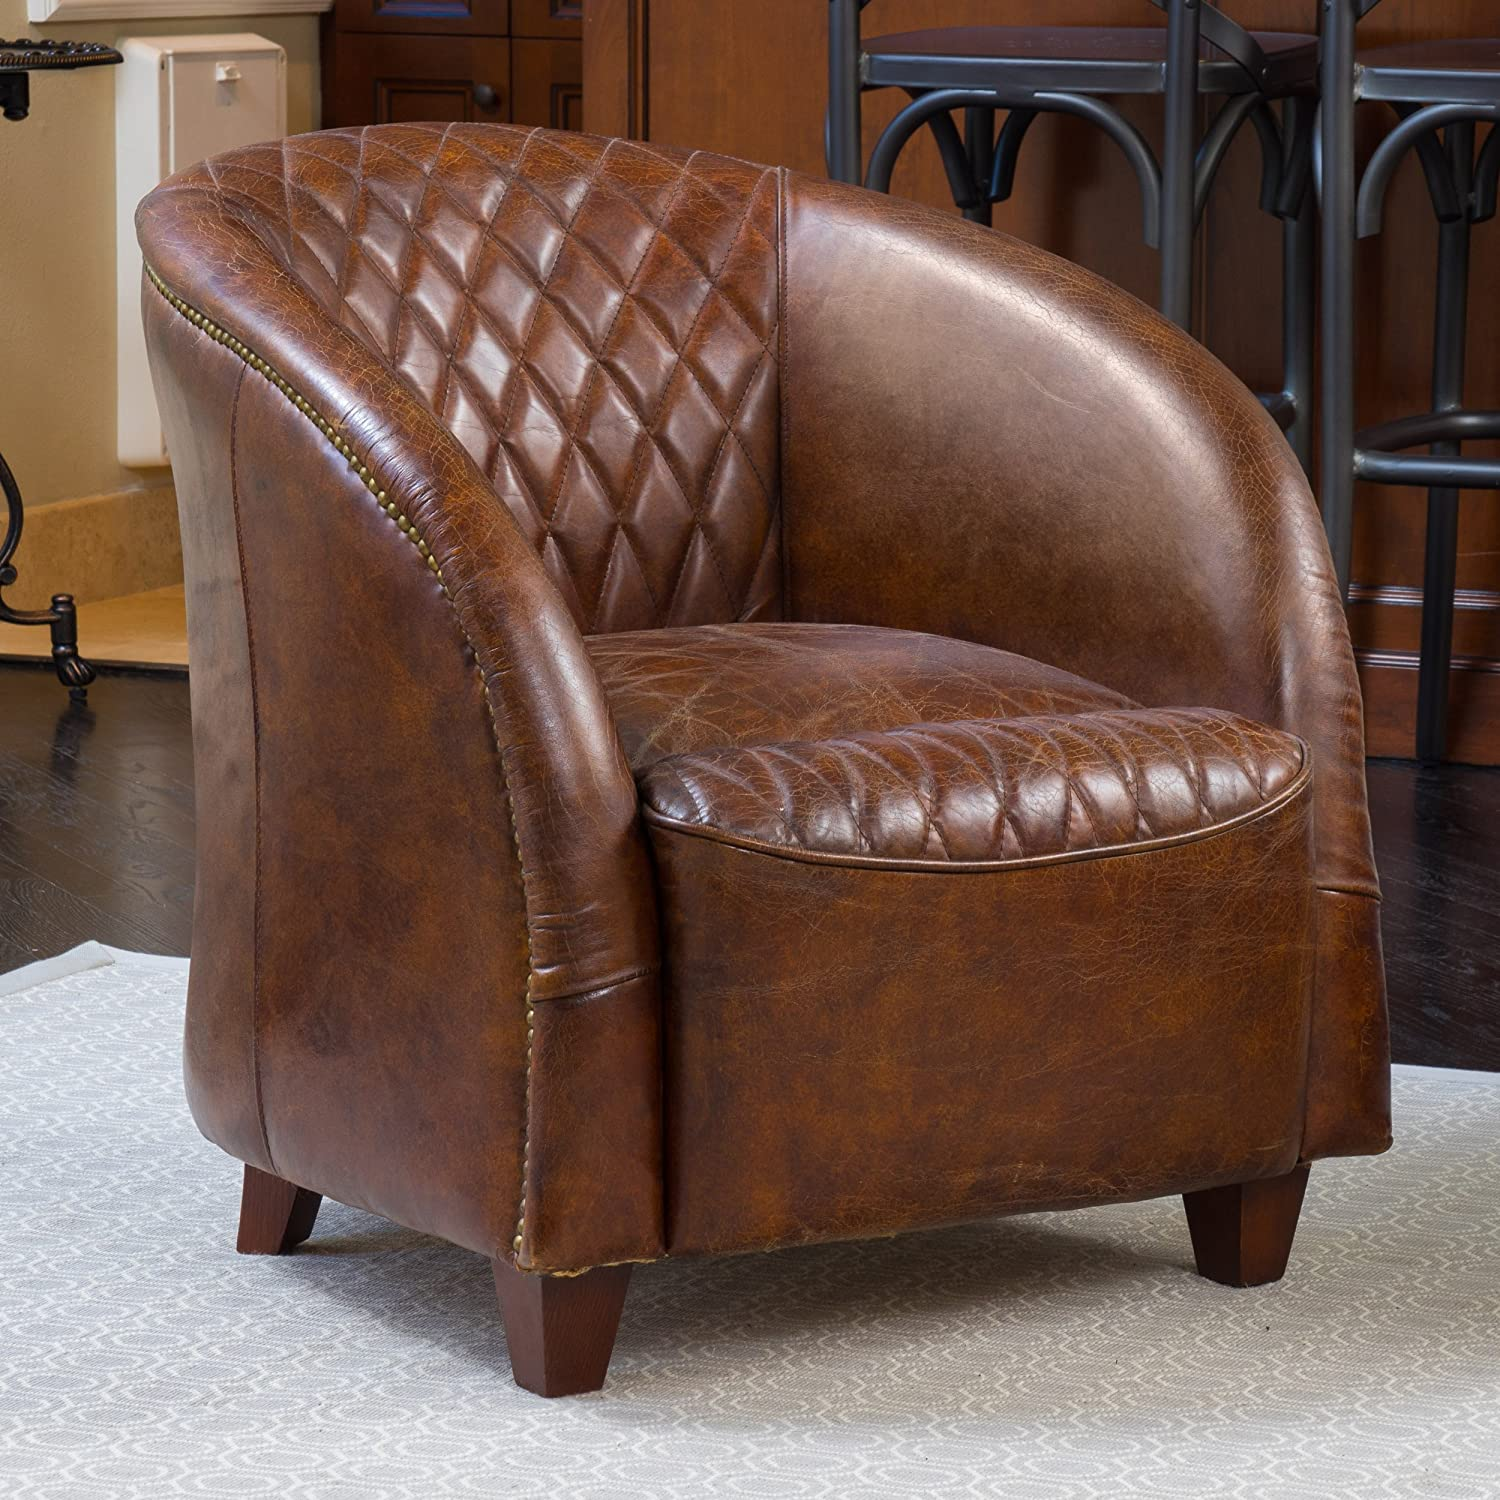 Merveilleux Amazon.com: Michele Quilted Brown Top Grain Leather Club Chair: Kitchen U0026  Dining